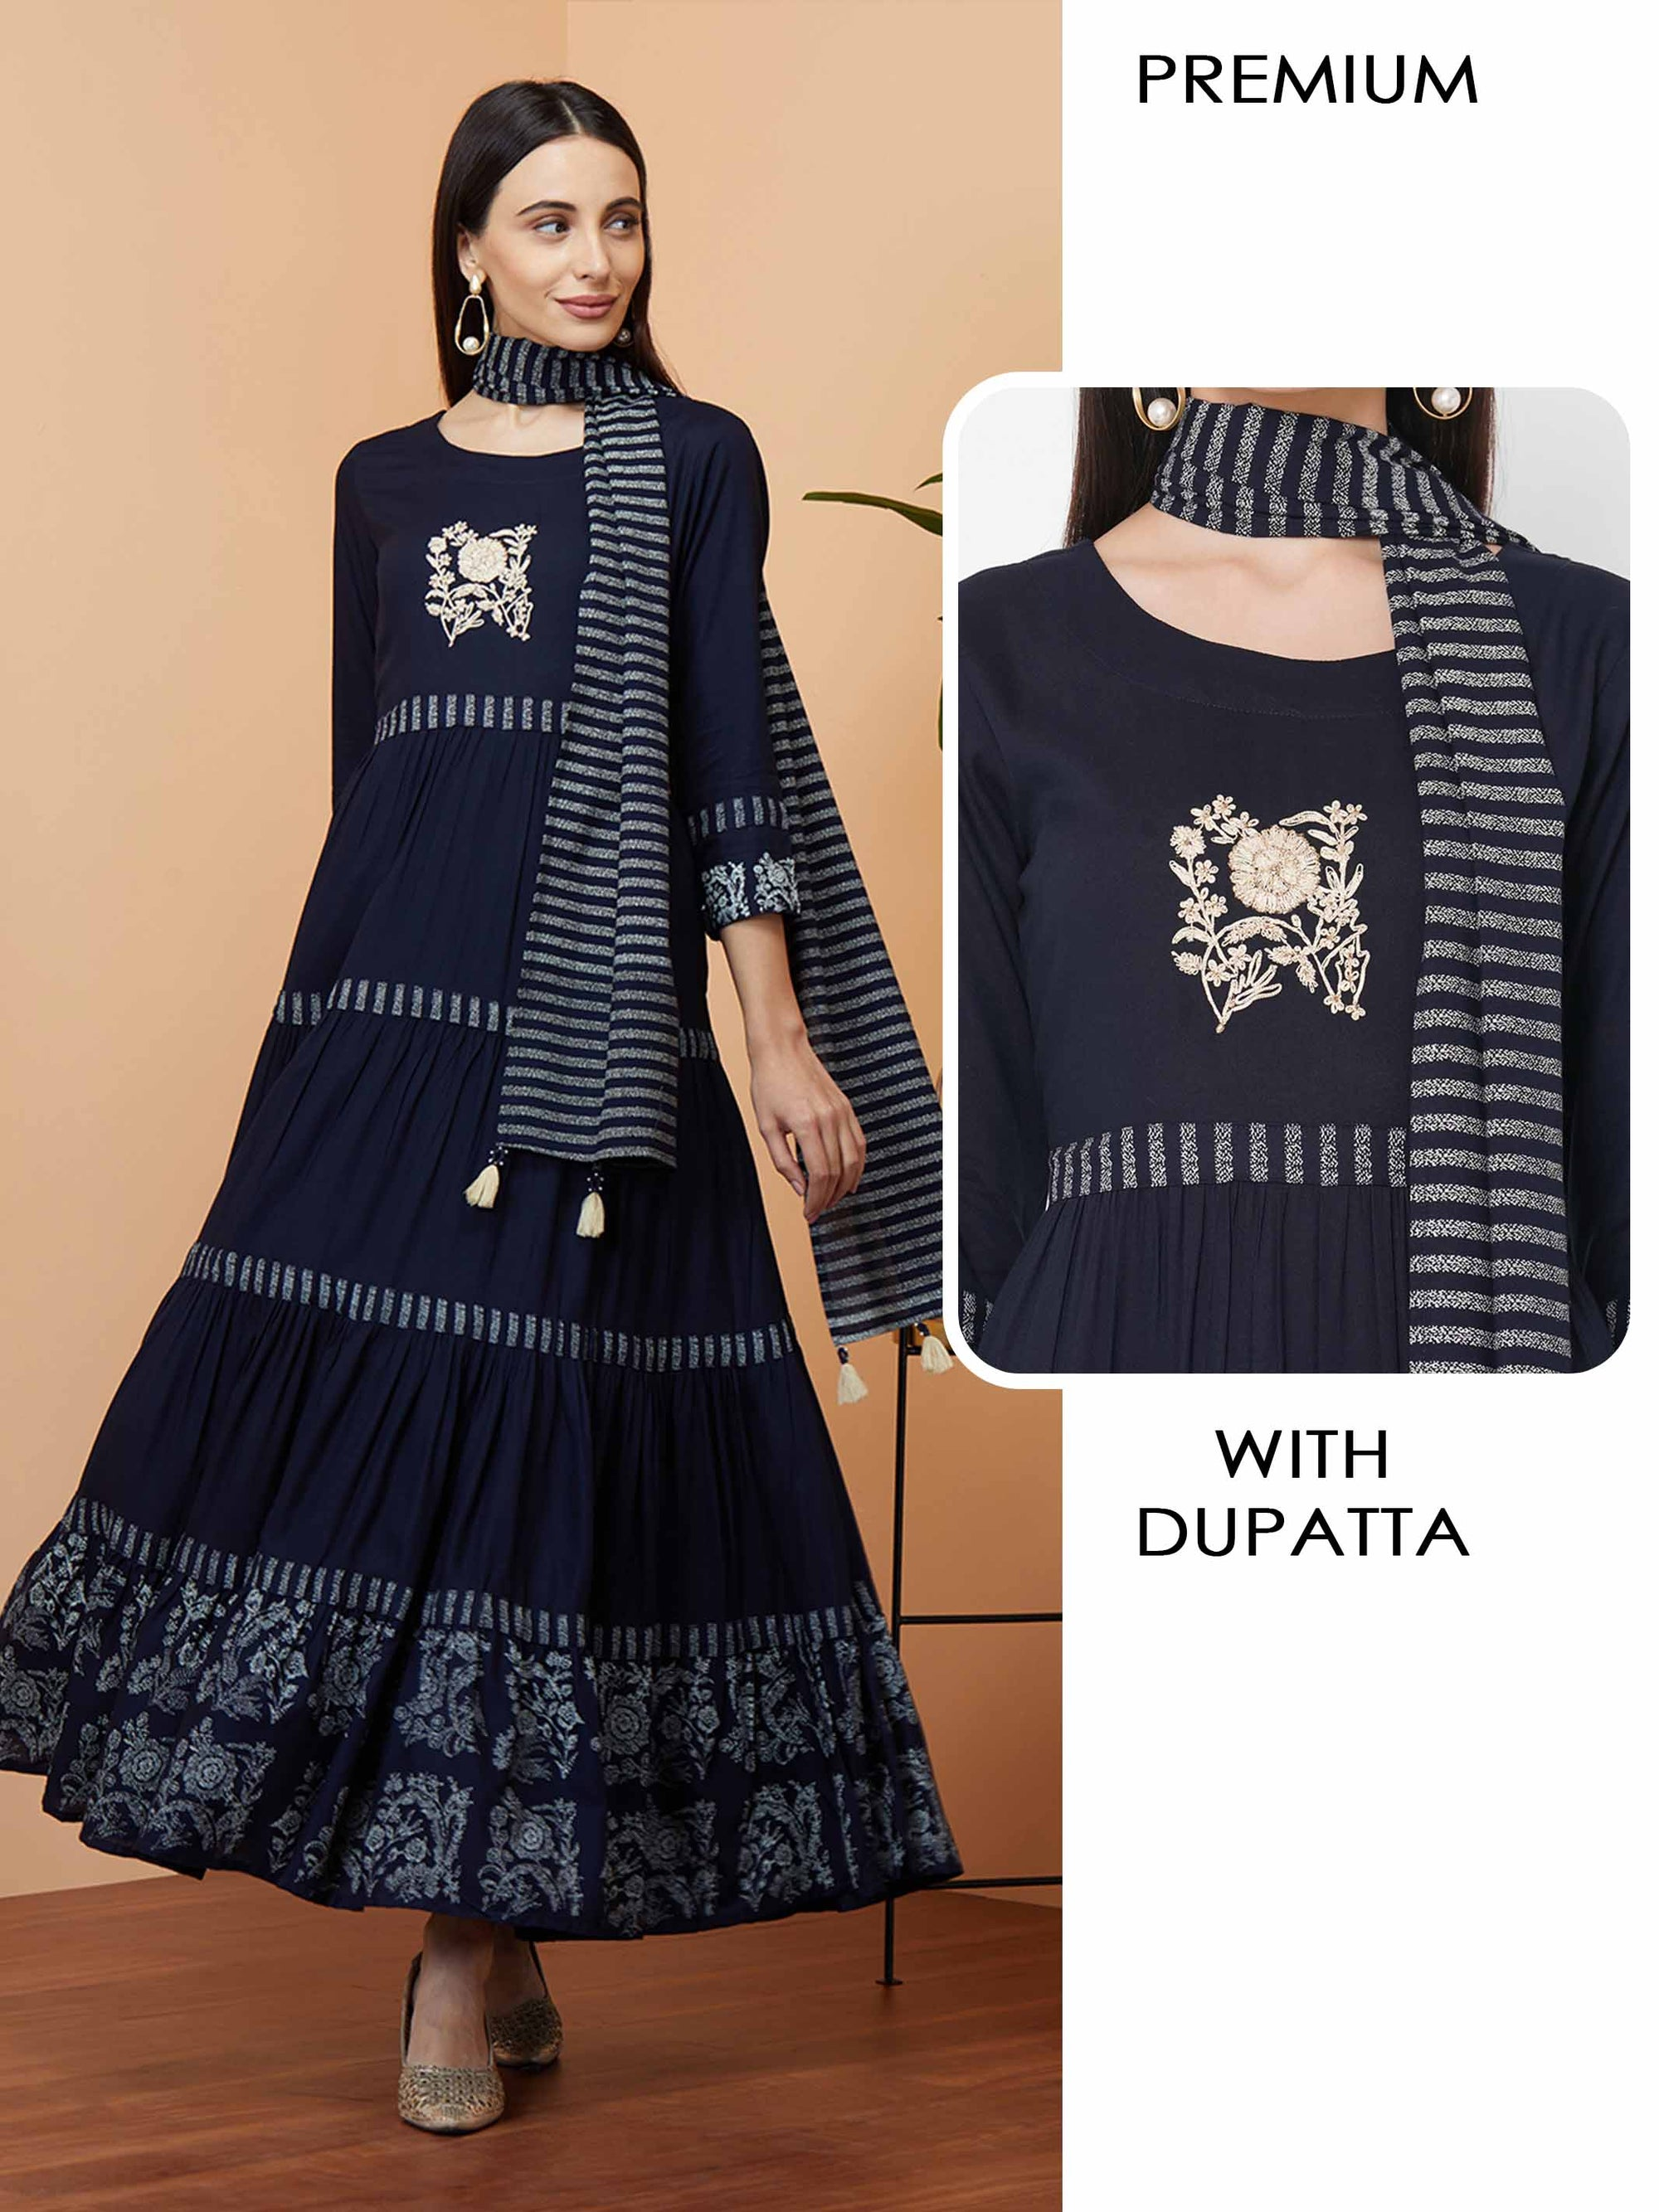 Foil printed & Embroidered Tiered Maxi with Printed Dupatta - Navy Blue